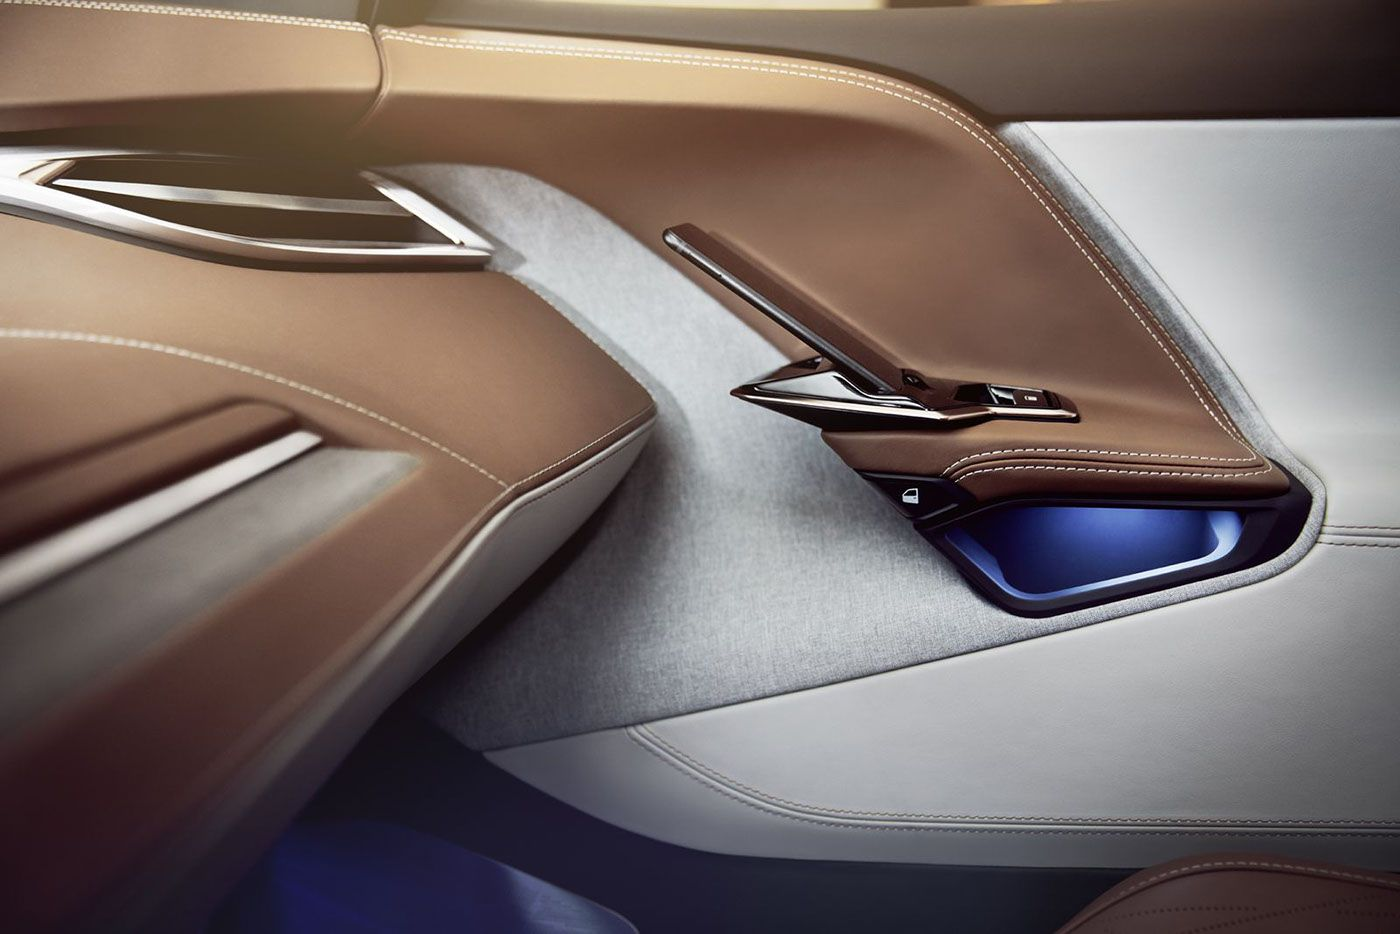 Byton Electric Suv Concept 2018 On Behance Car Interior Custom Car Interior Car Interior Upholstery